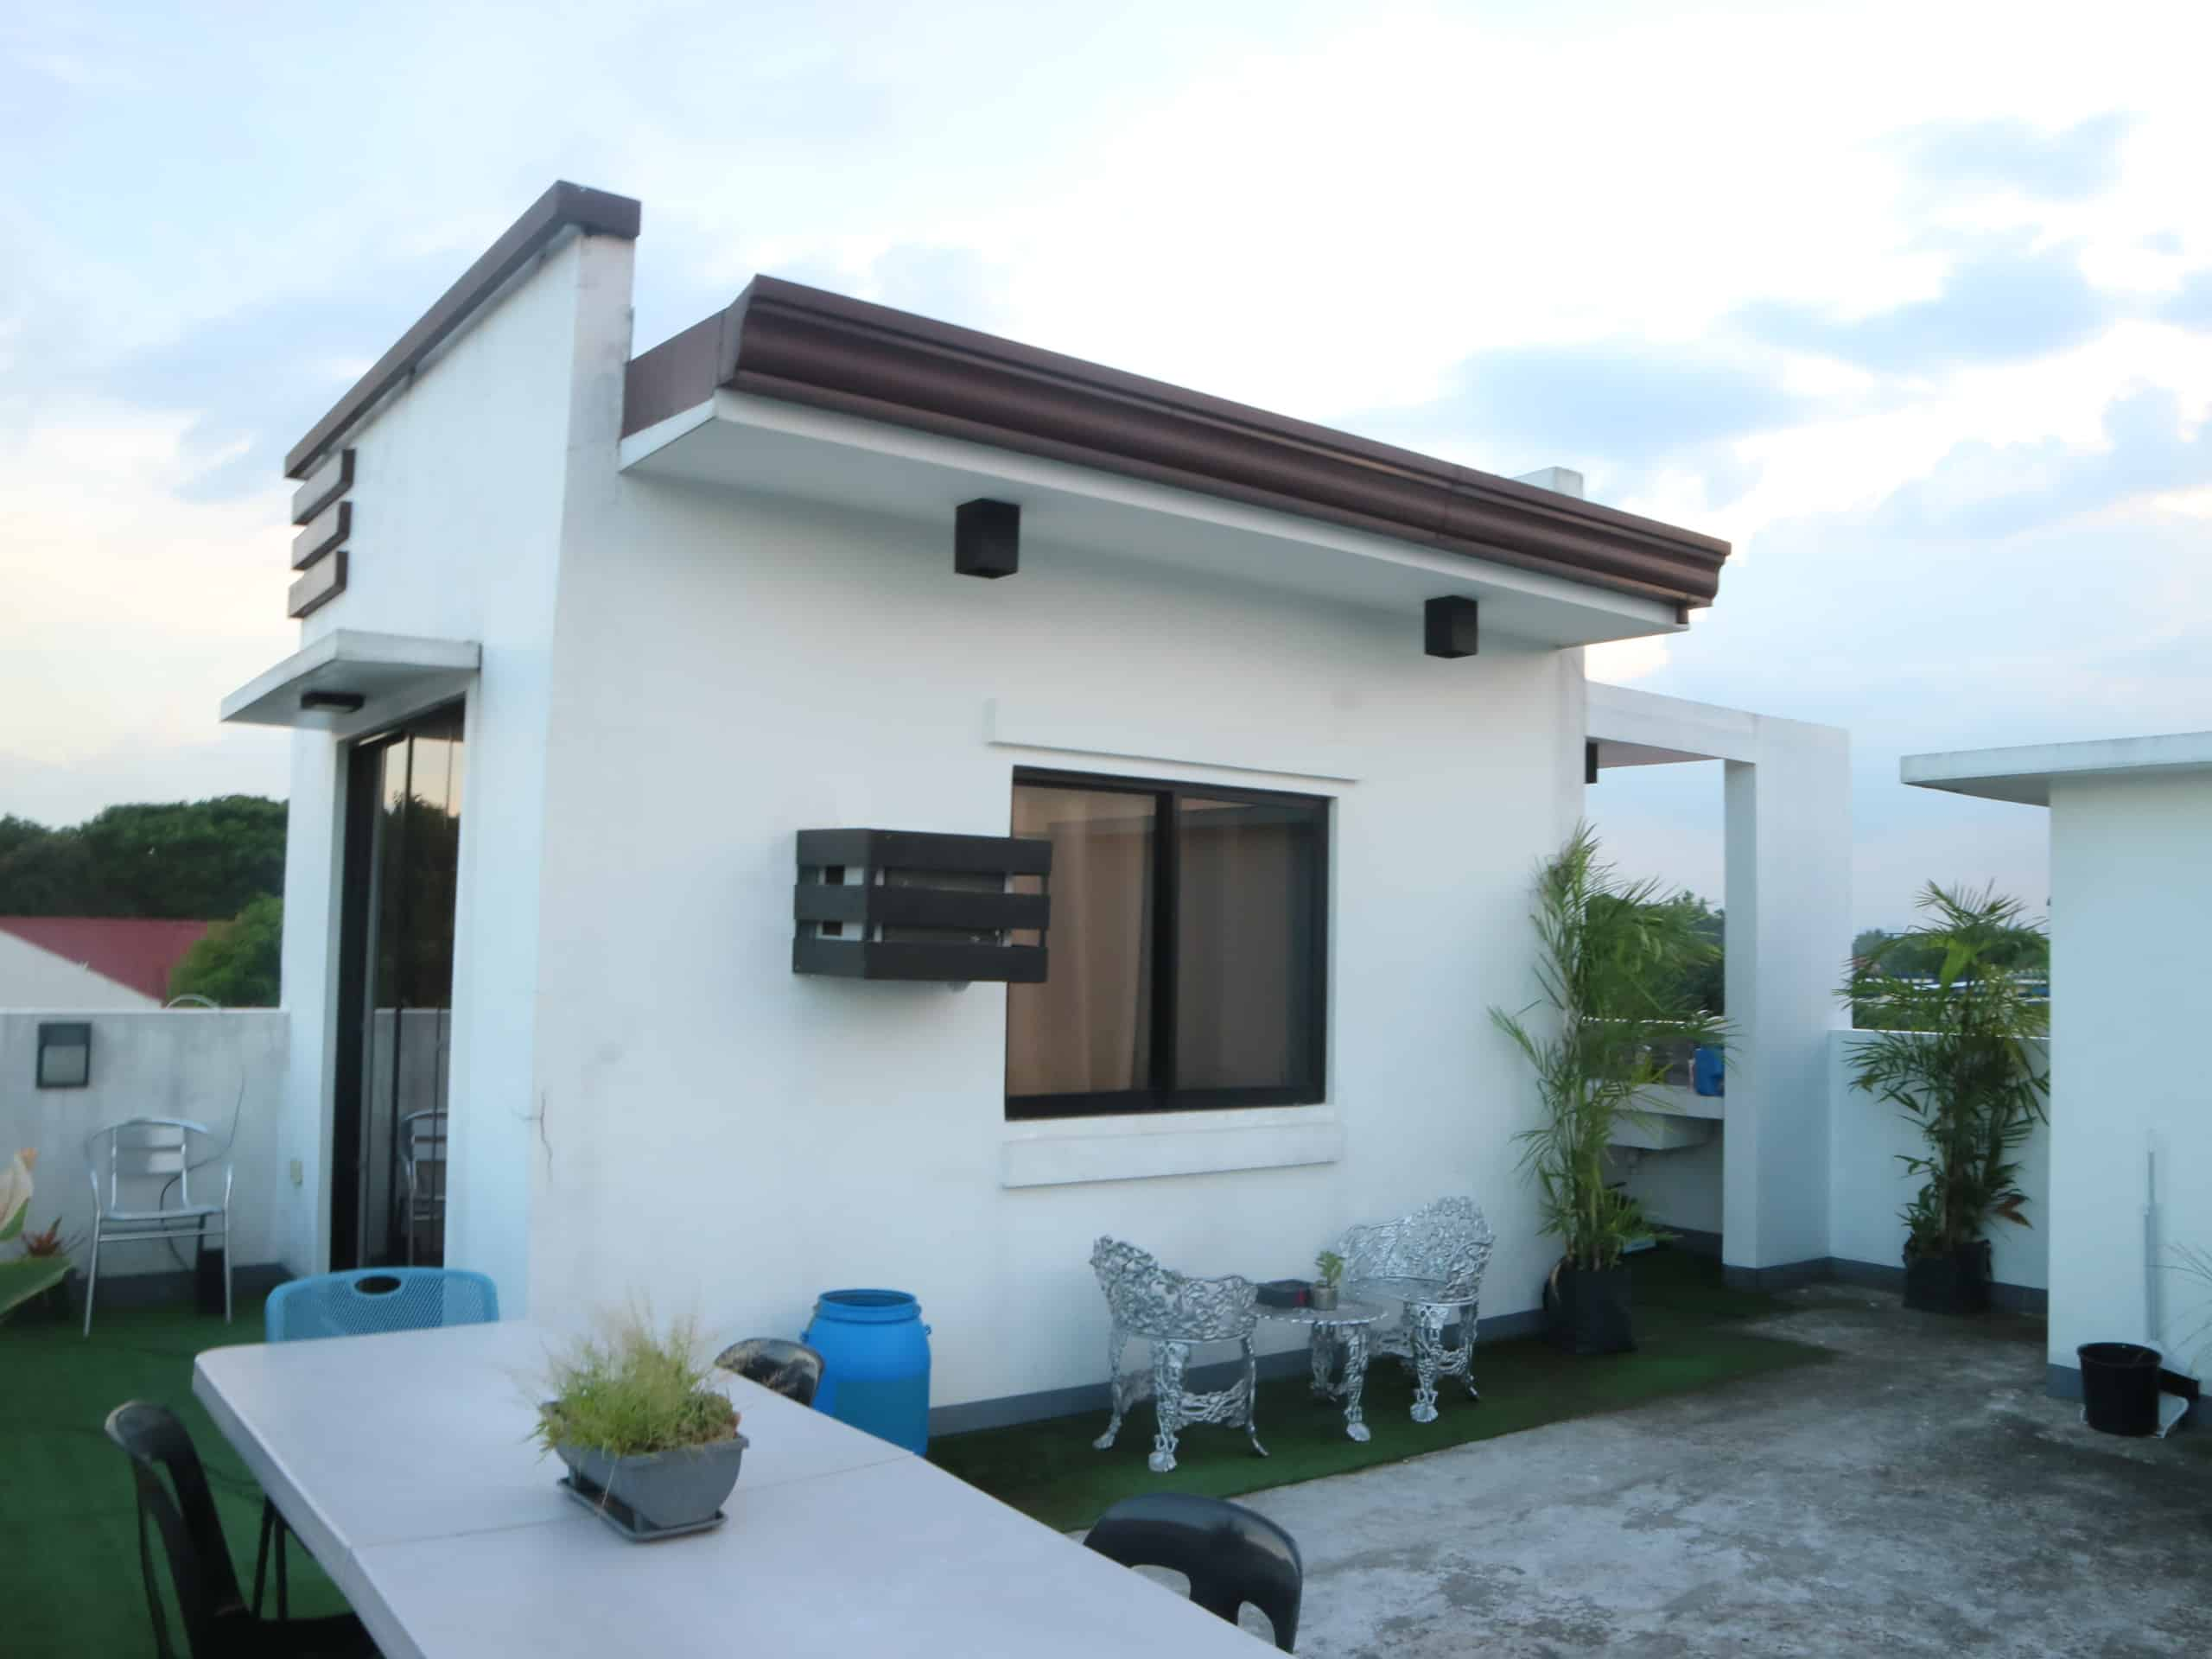 Spend a Quiet Weekend on this Rooftop Airbnb in Rizal